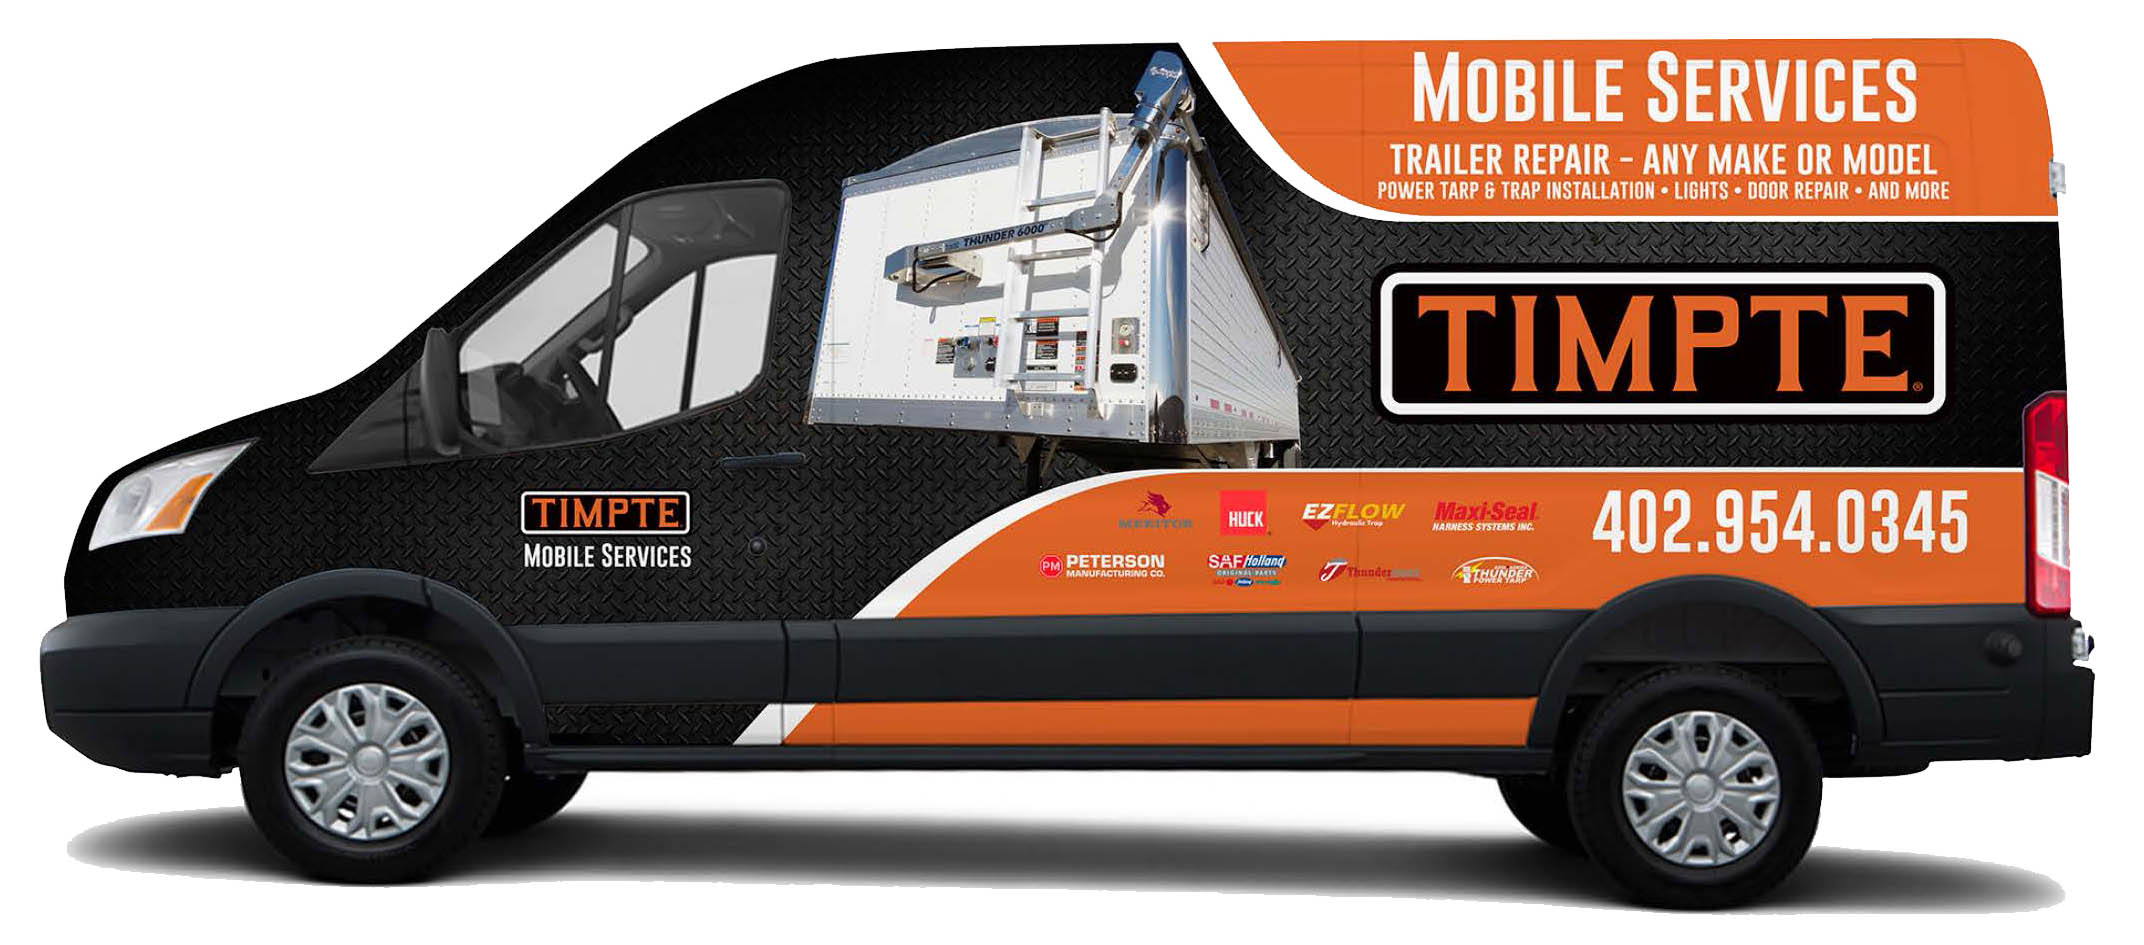 Timpte_Mobile_Service_Trailer_Repair_and_Service.jpg